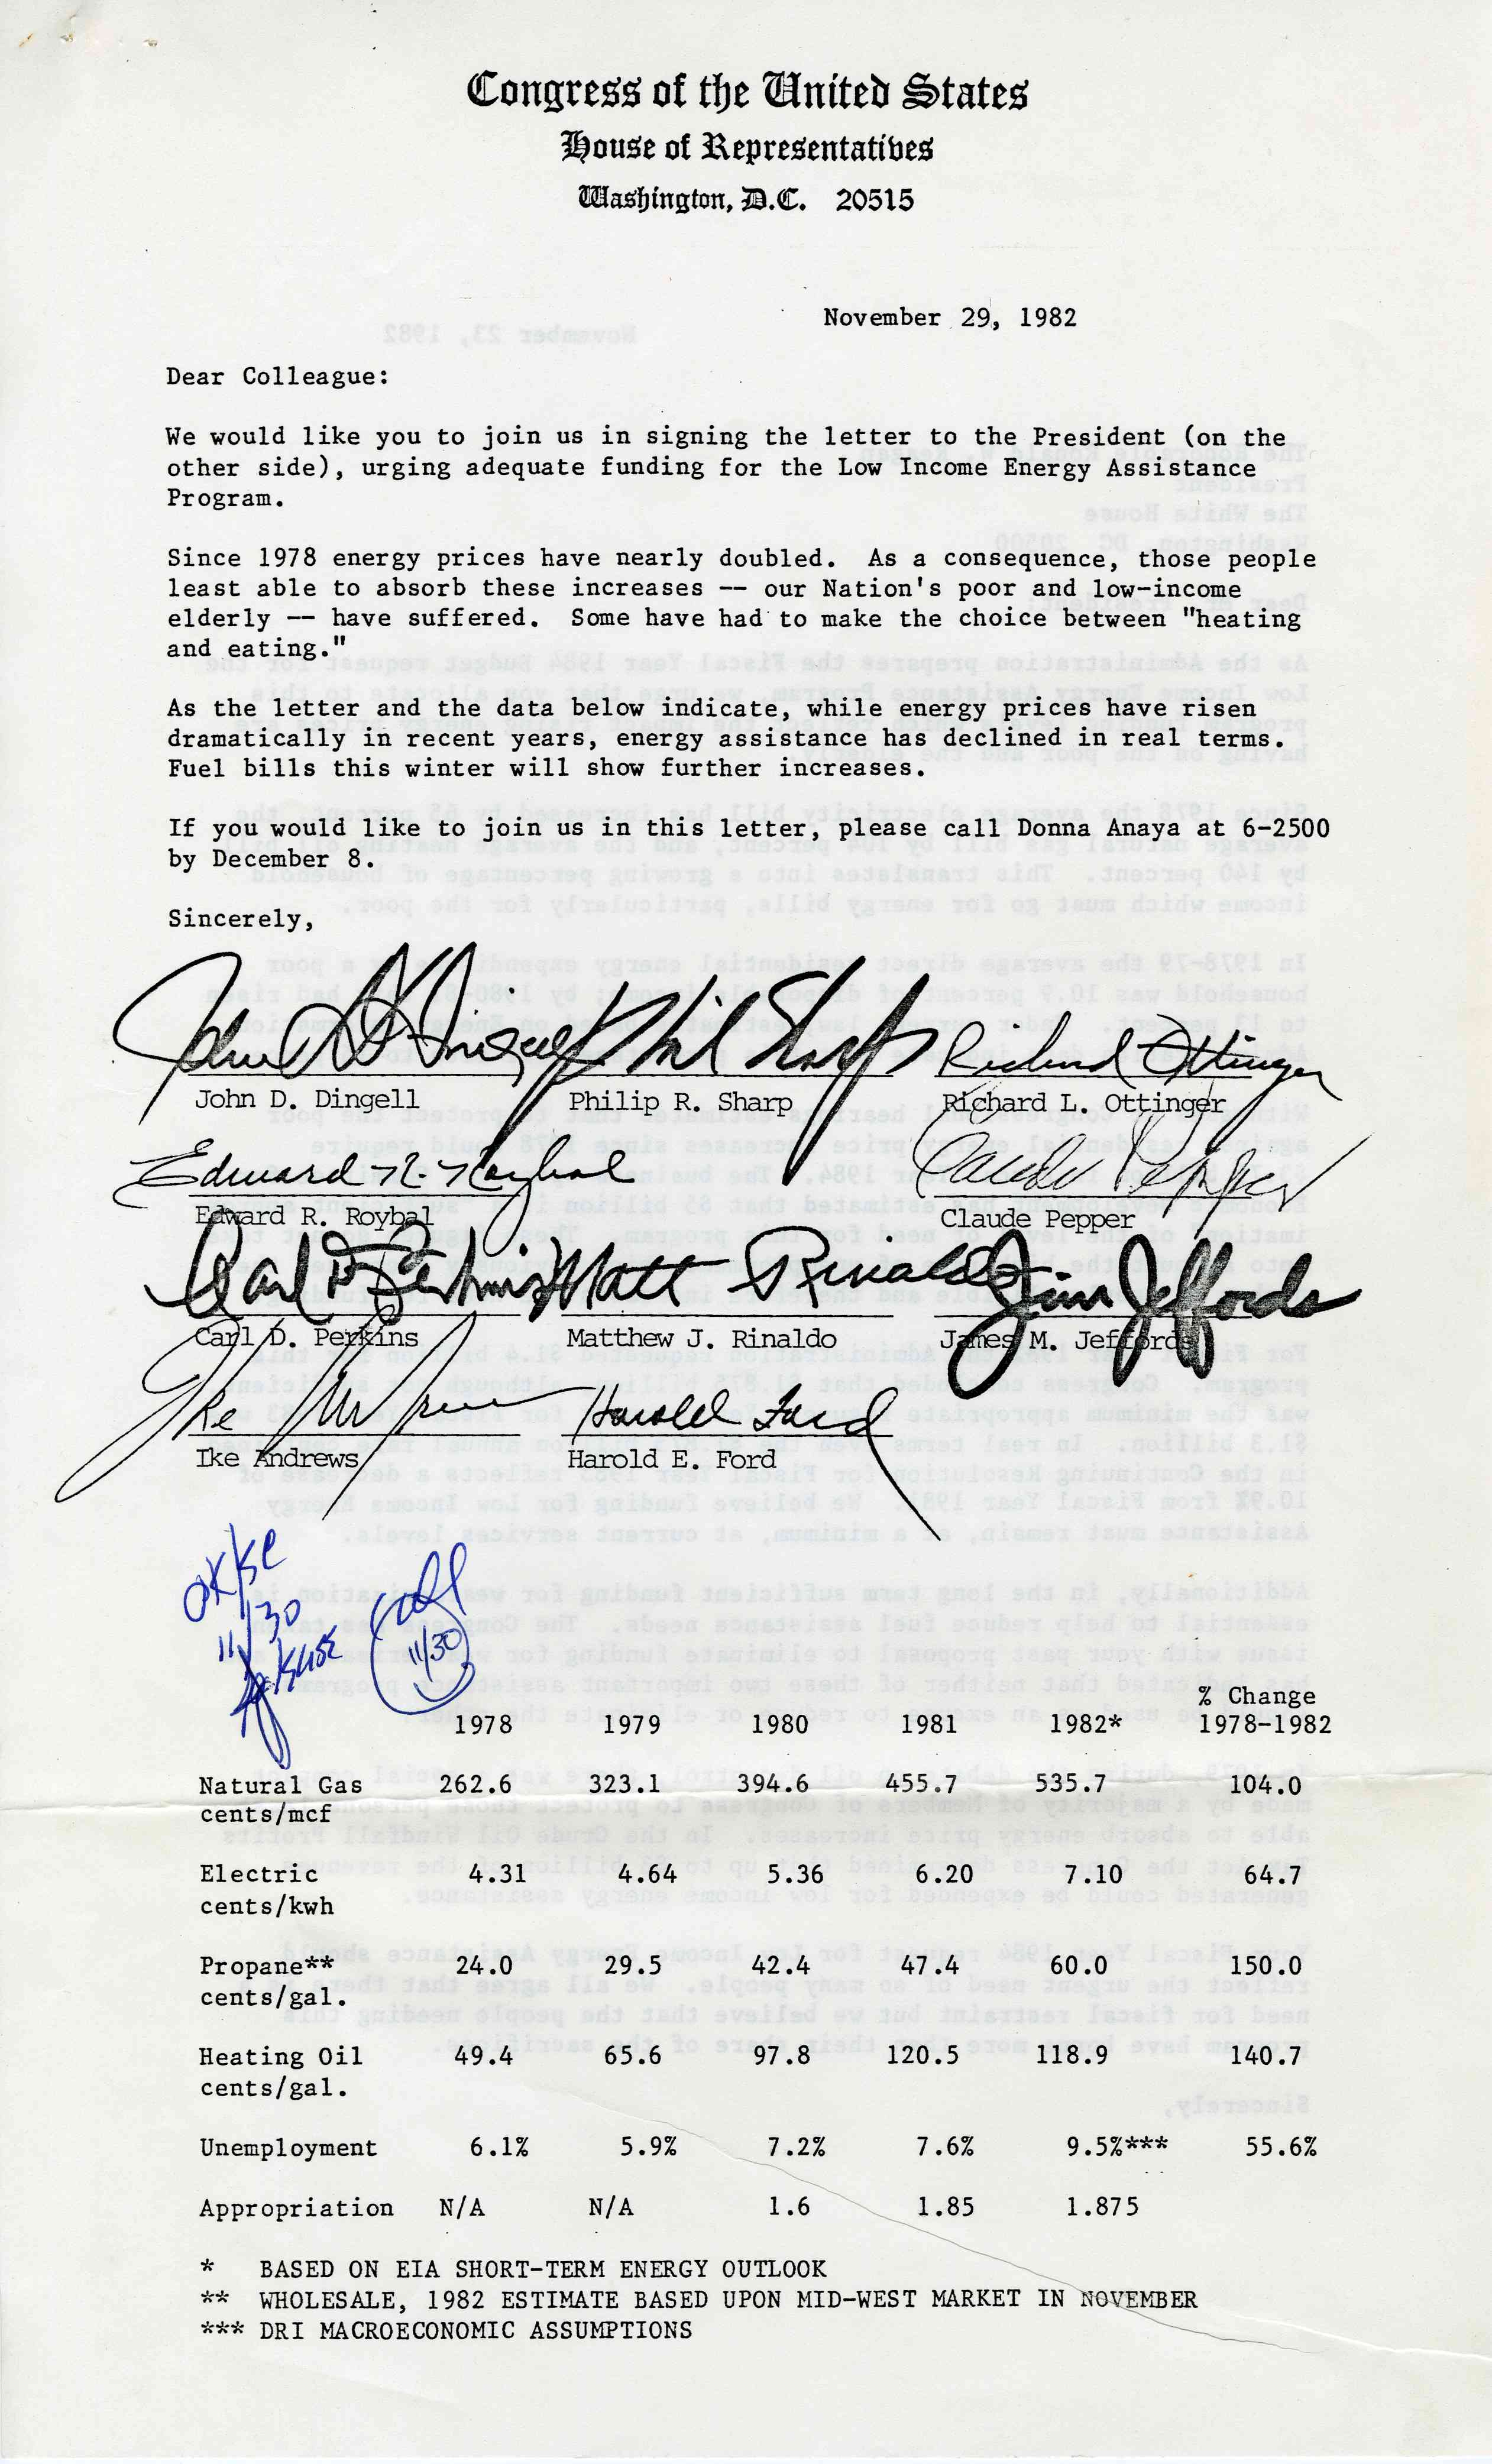 Copy of letter to ronald reagan request for funding for low income brosenthalb22f31energy002g altavistaventures Choice Image